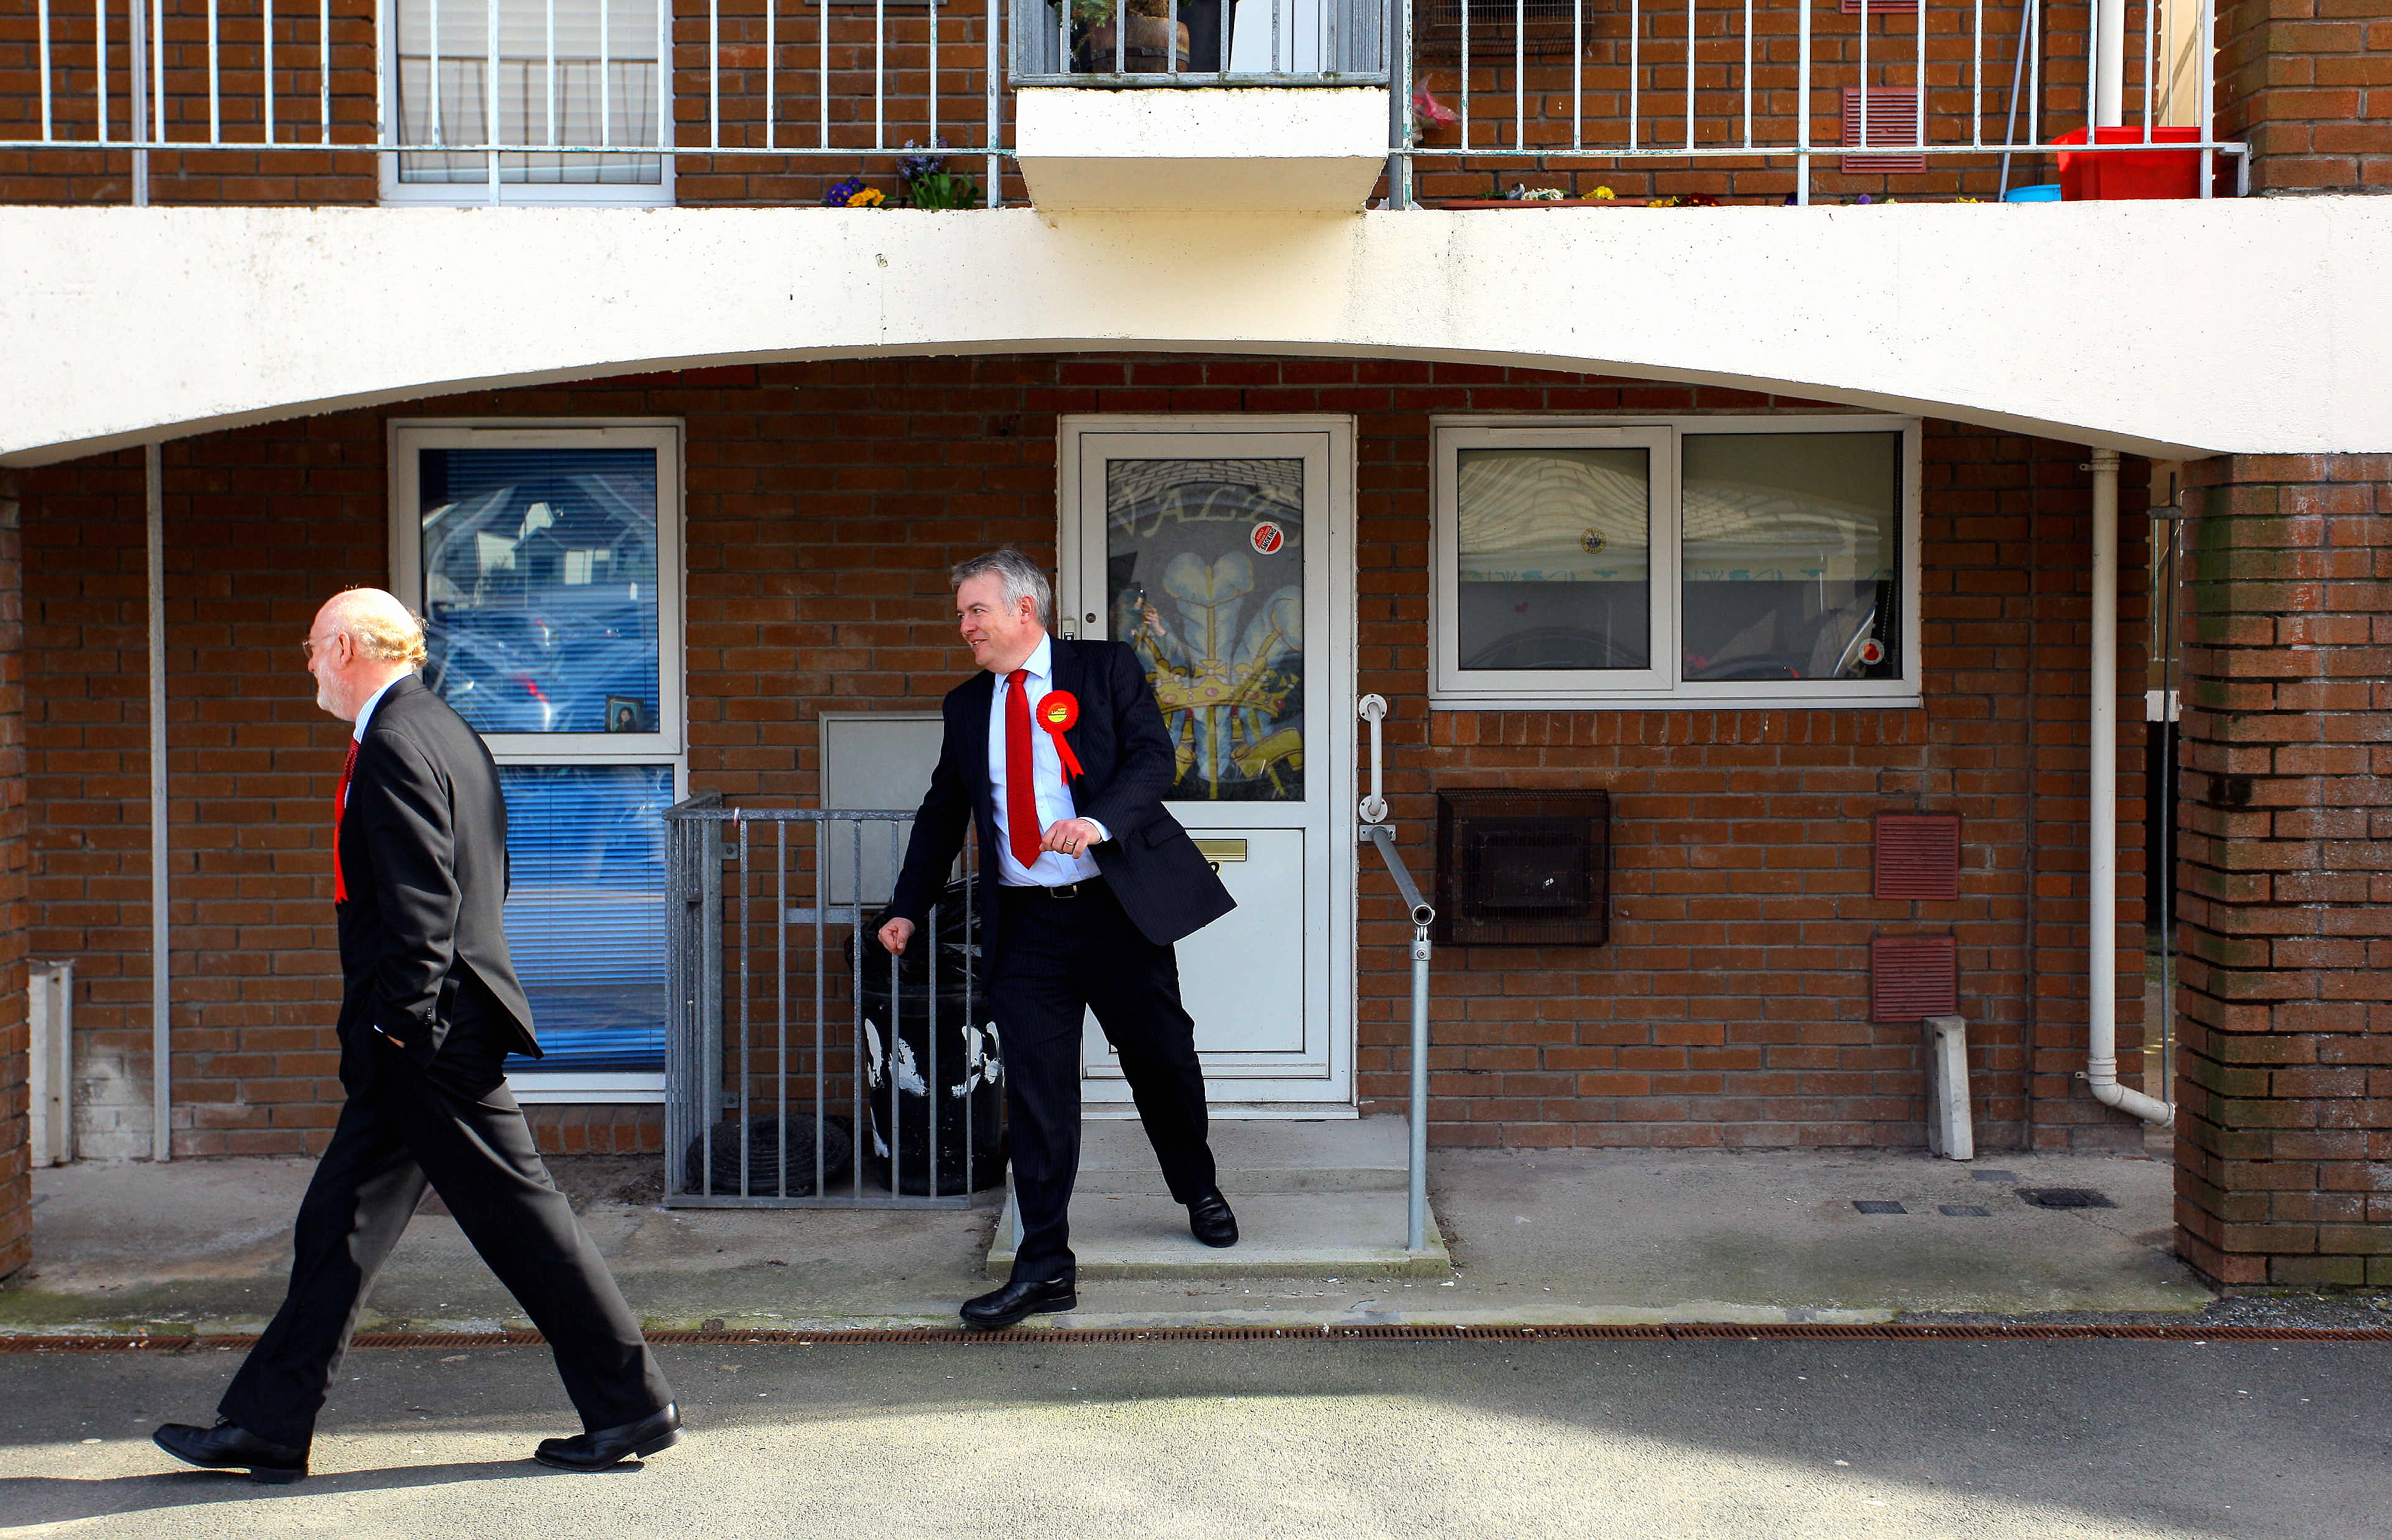 Pictured: Carwyn Jones (R) with Nick Ainger (L) coming out of a flat they just canvassed Re: First Minister for Wales Carwyn Jones canvassing in Carmarthen west Wales with Nick Ainger. Thursday 08 April 2010